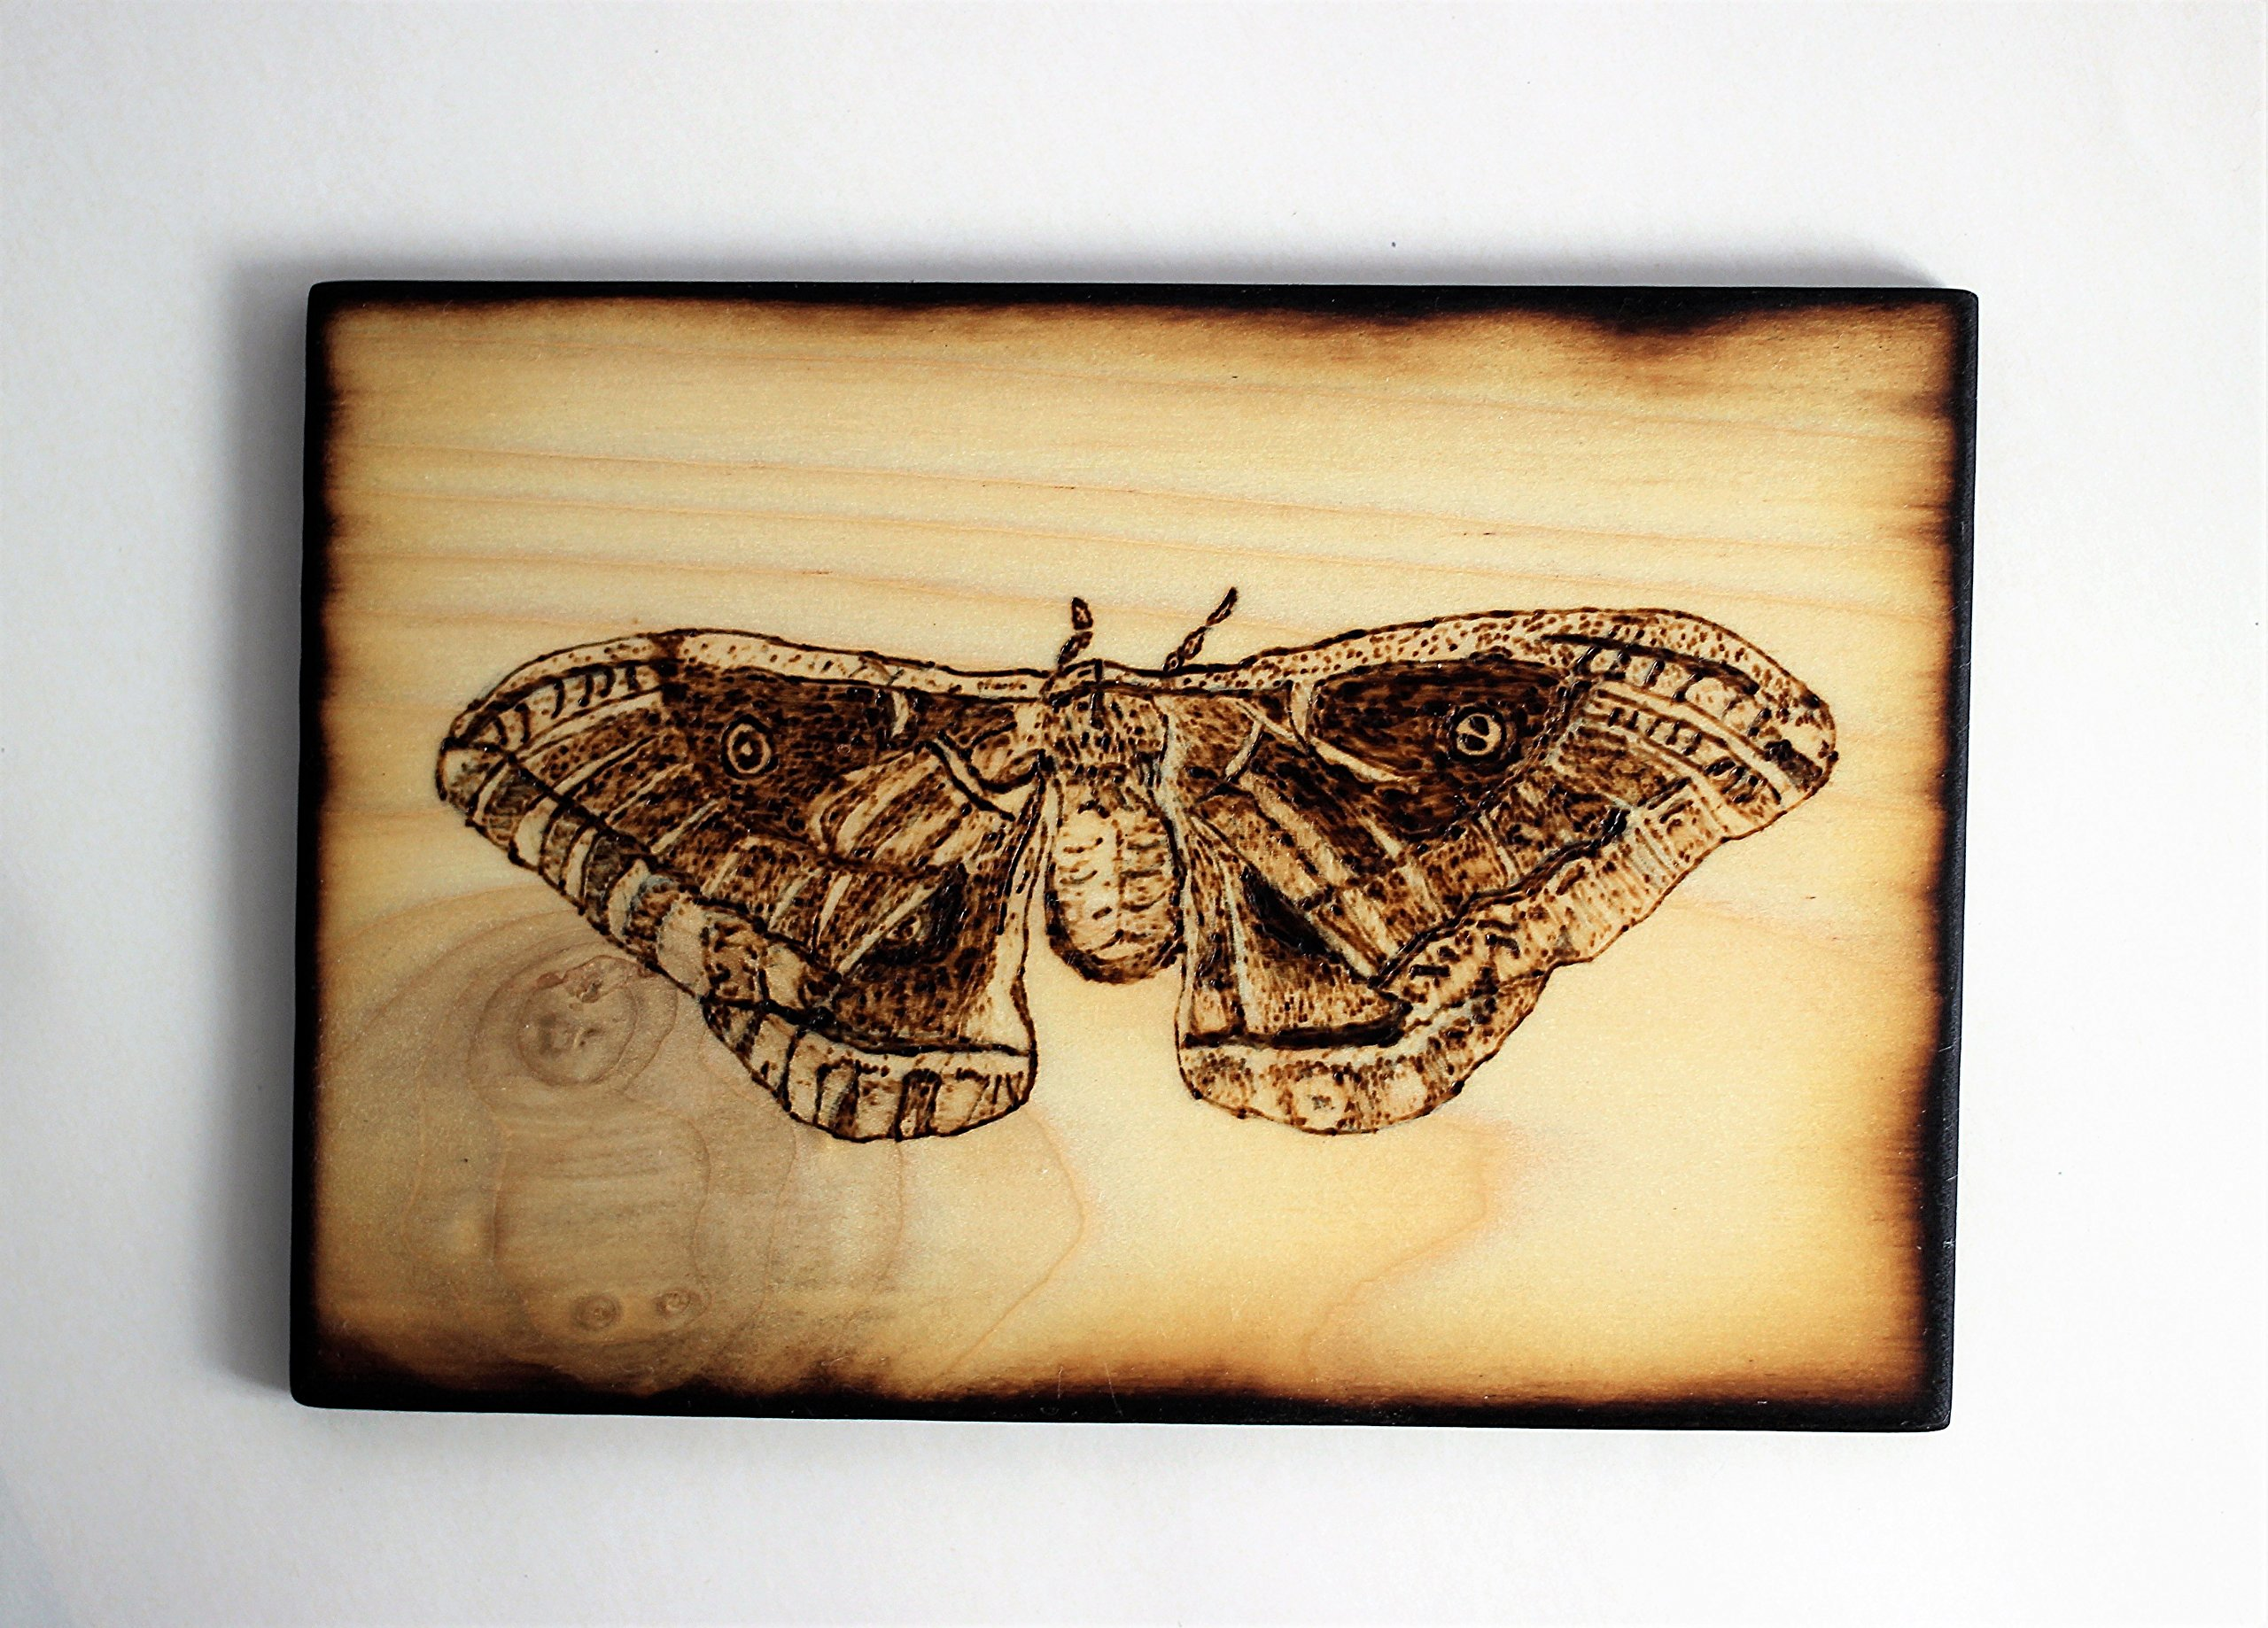 Wood Burned Polyphemus Moth Pyrography Small Woodburned Nature Insect Picture by Hendywood (Image #2)